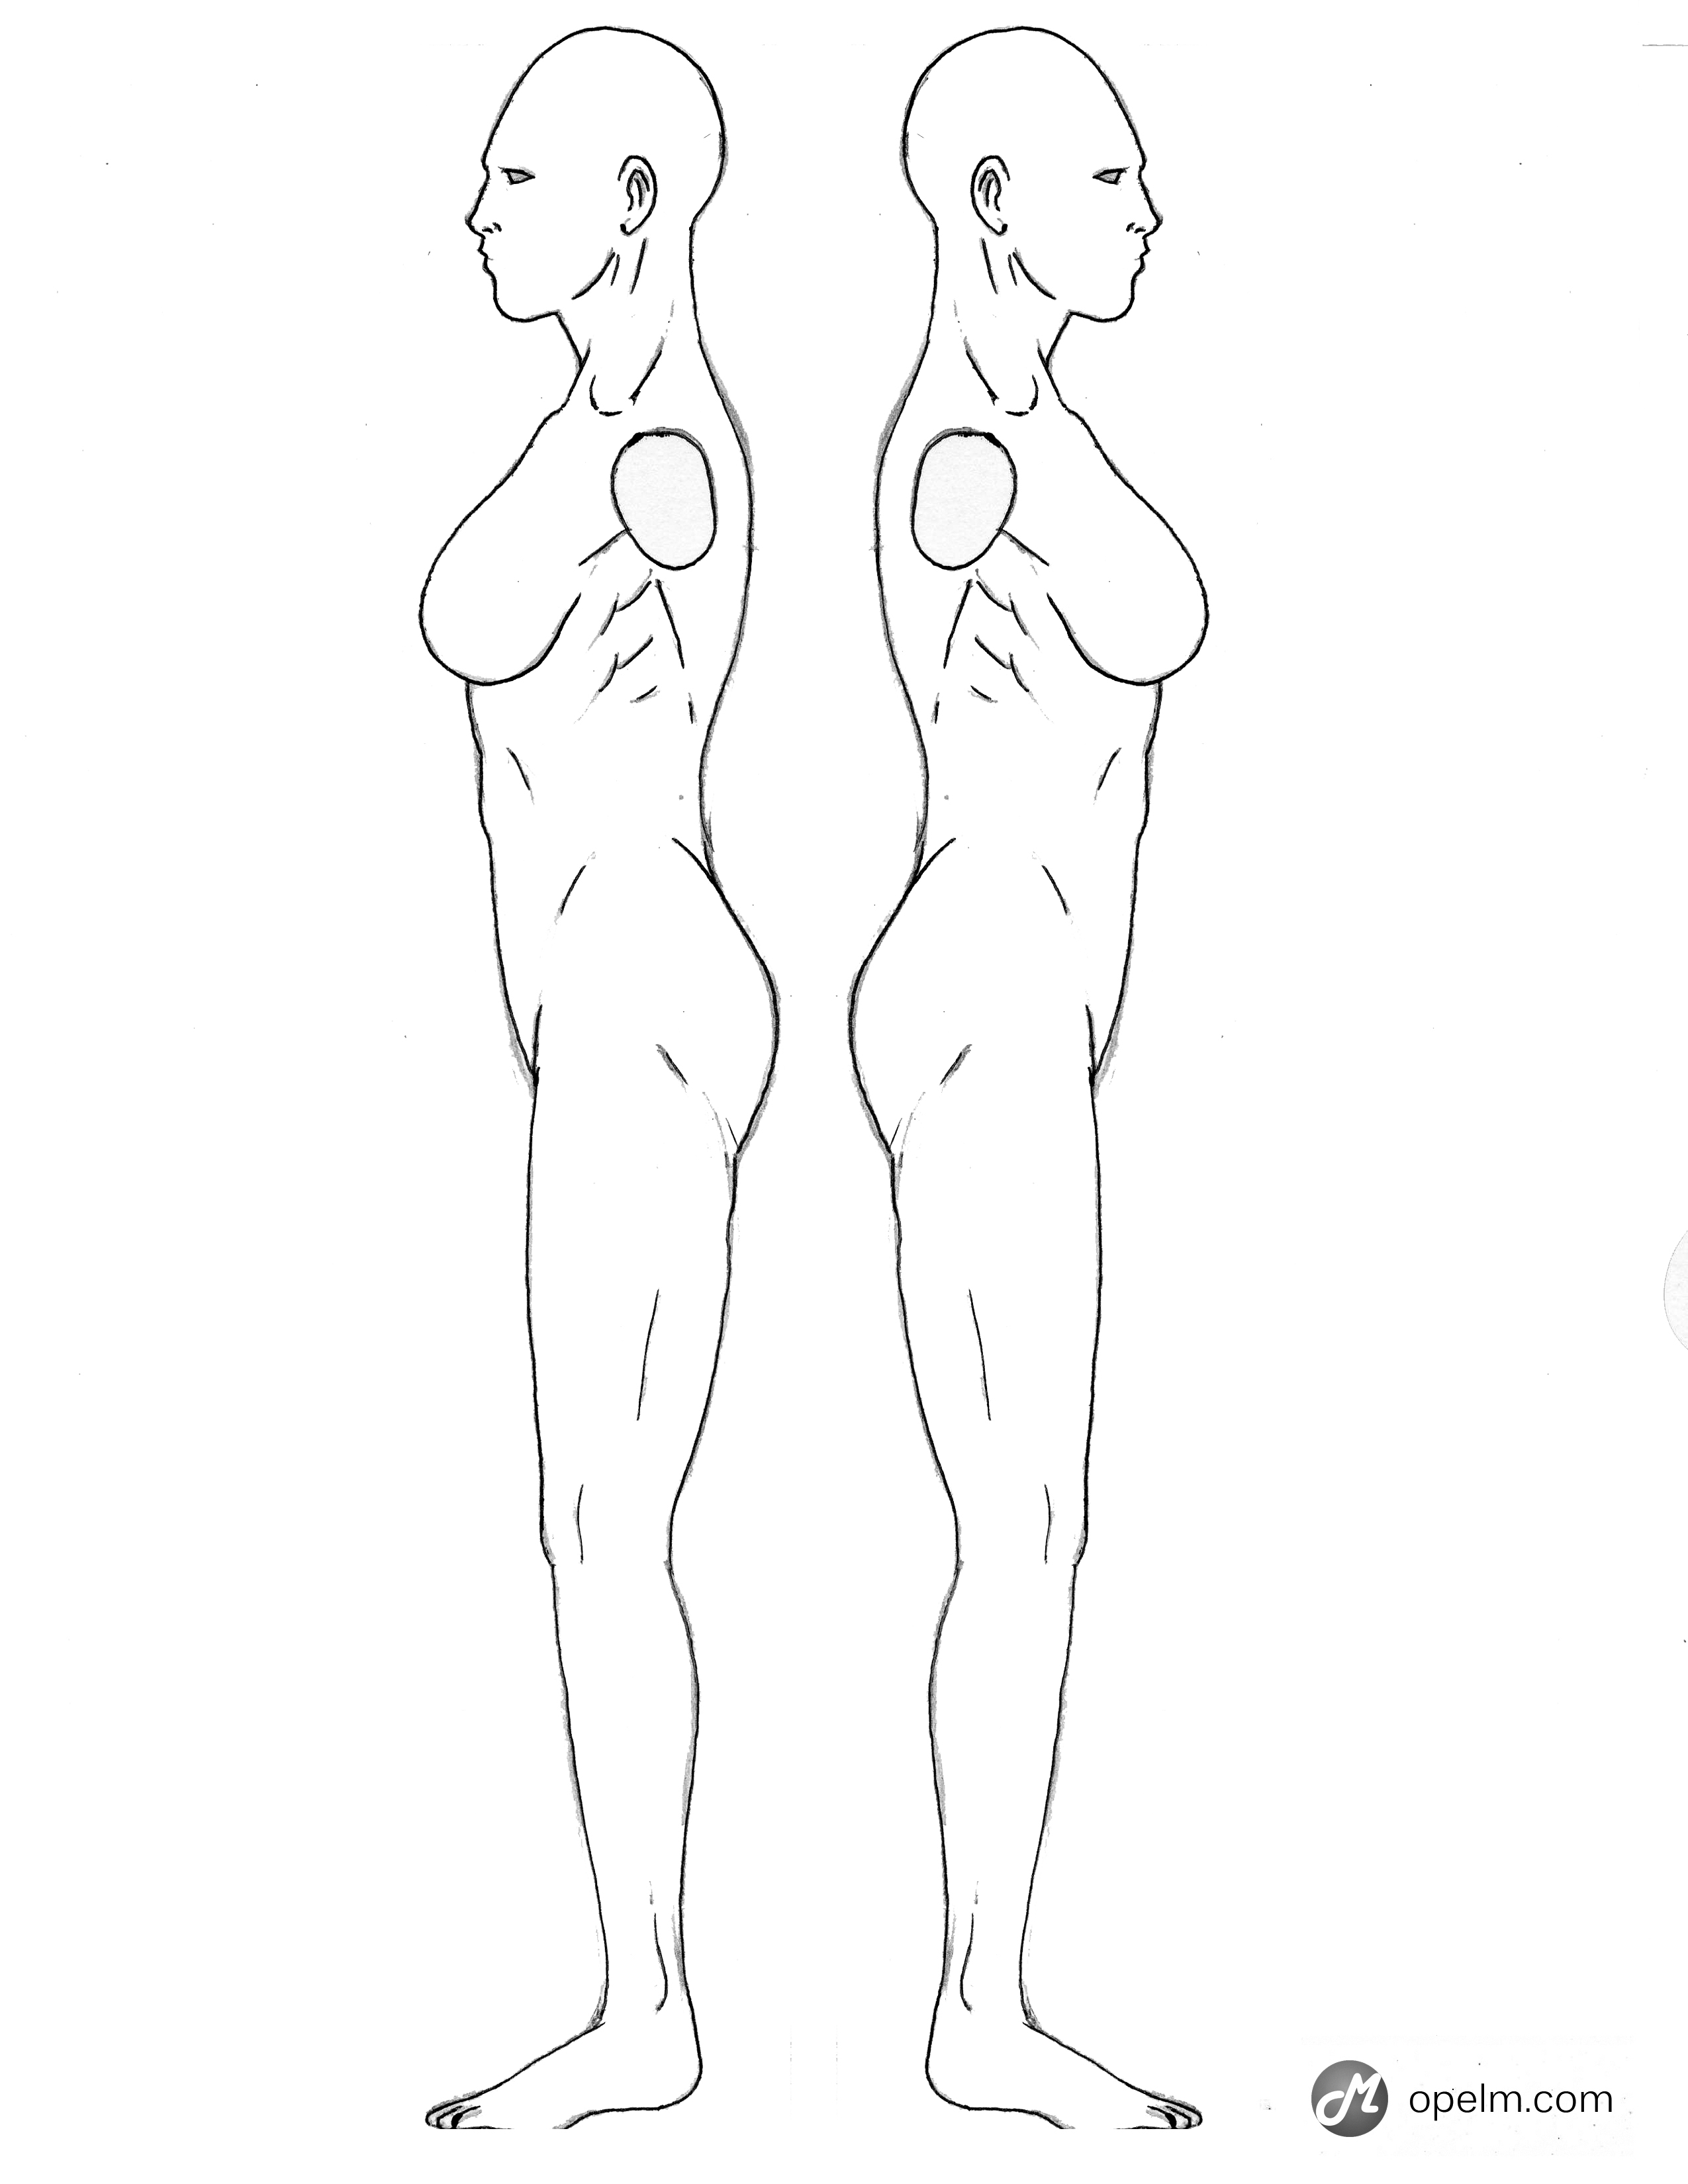 Female Anatomy Drawing Model - Side by Gourmandhast on DeviantArt